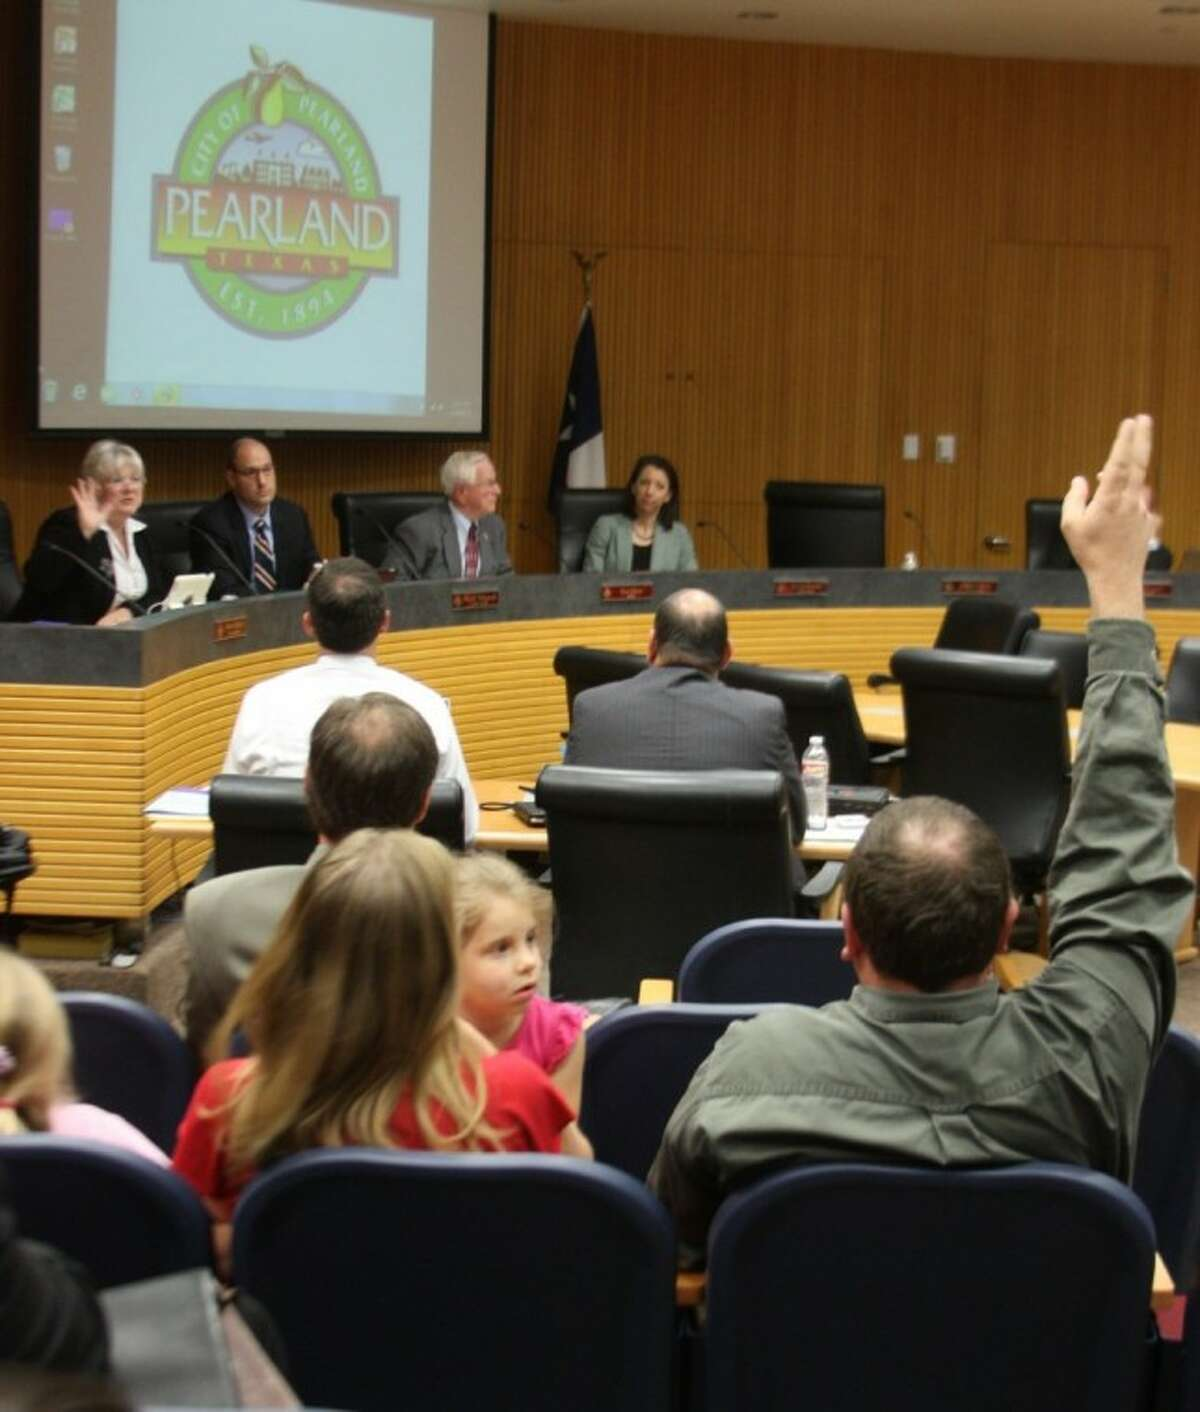 """Frustrated homeowners questioned the Pearland City Council and urged they deny a proposed zone change request that would allow a a medical developement located by their homes to move forward. One council member said she feels the individual rights of property owners are an important consideration. """"As a government official I also have to think about zoning,"""" Councilmember Susan Sherrouse said (far left). """"I am all about property rights. When you buy property you should be able to do what you want to do with it. But then people want to tell their neighbors what to do with their property. I am very proud that Pearland has zoning and that we have a planning and zoning commission. We take that into serious consideration because our homeowners are very important to us. But, then again our businesses are also very important to us."""""""